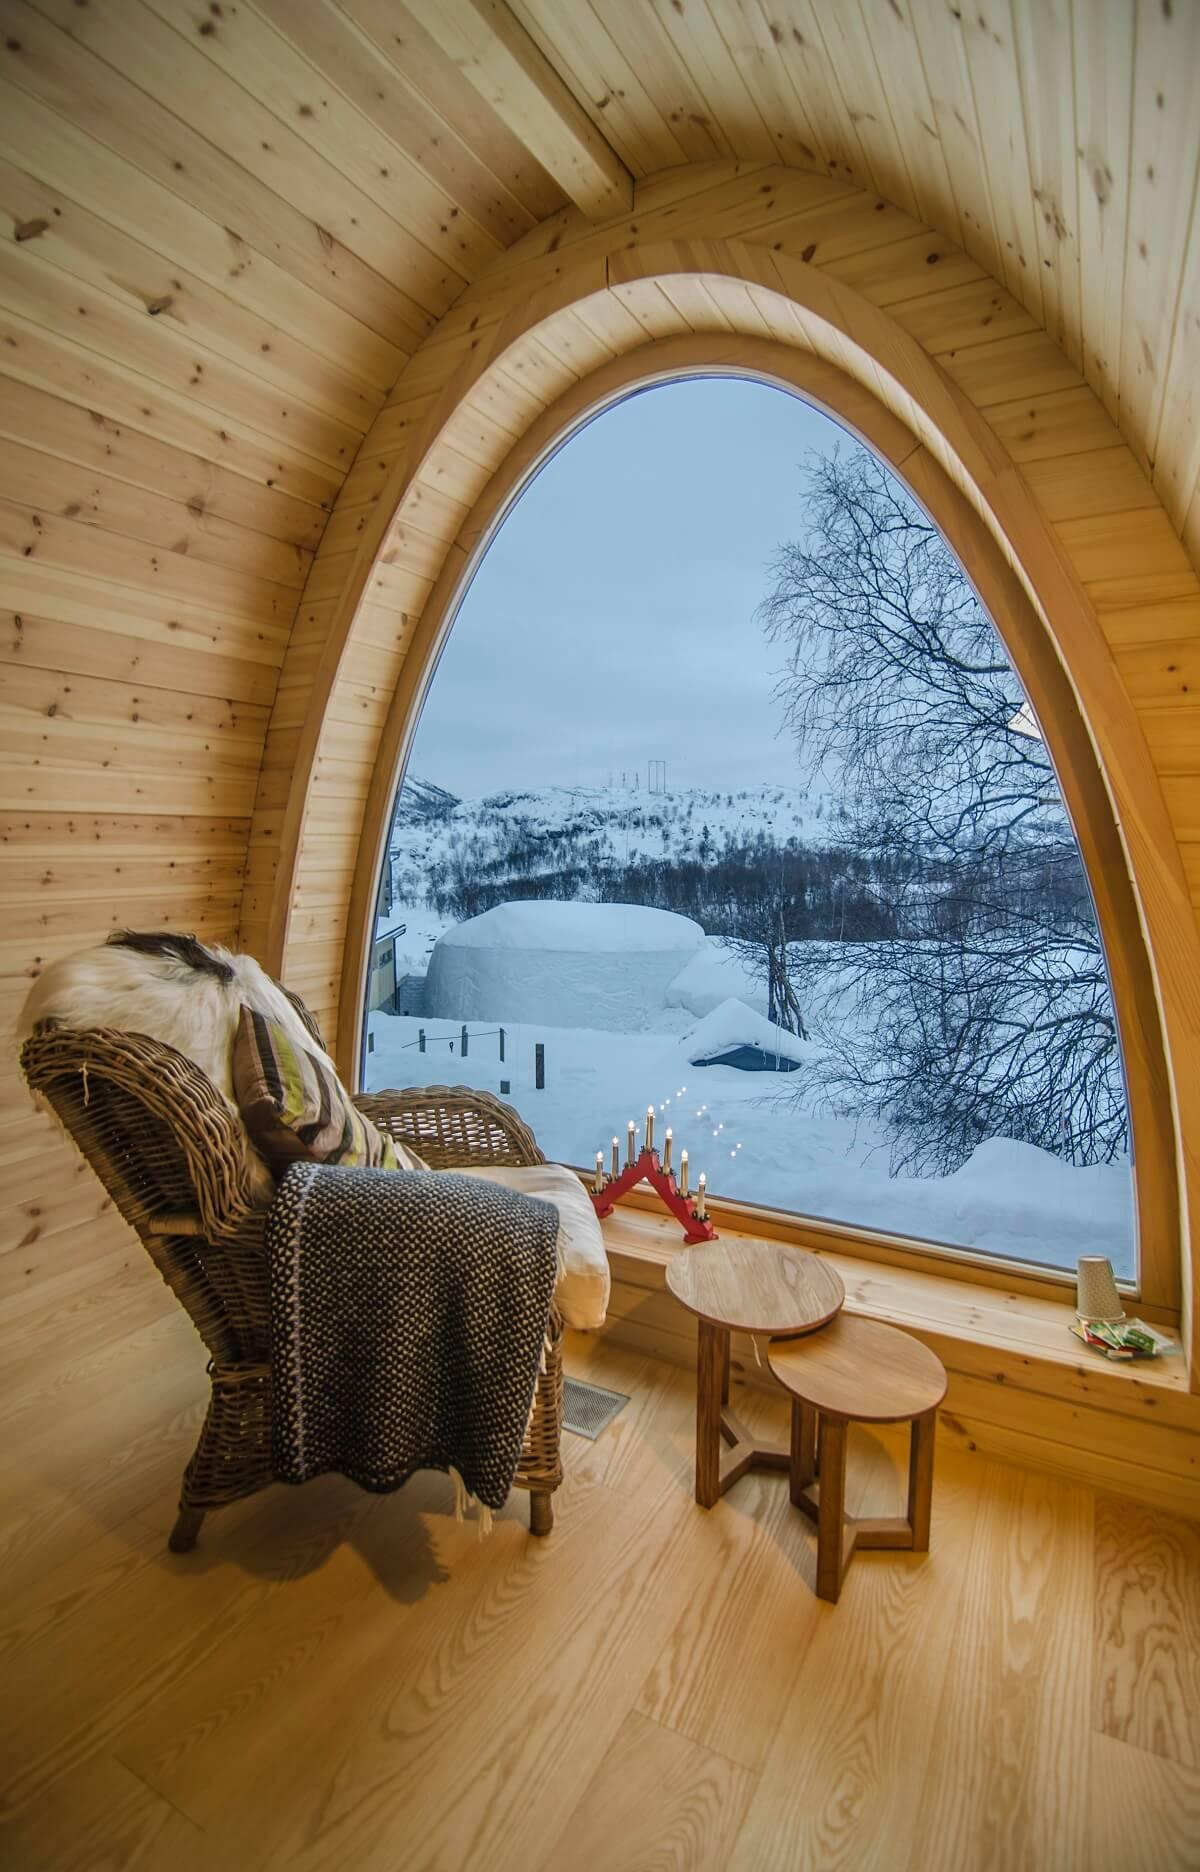 A Cozy Place with a Winter Wonderland View